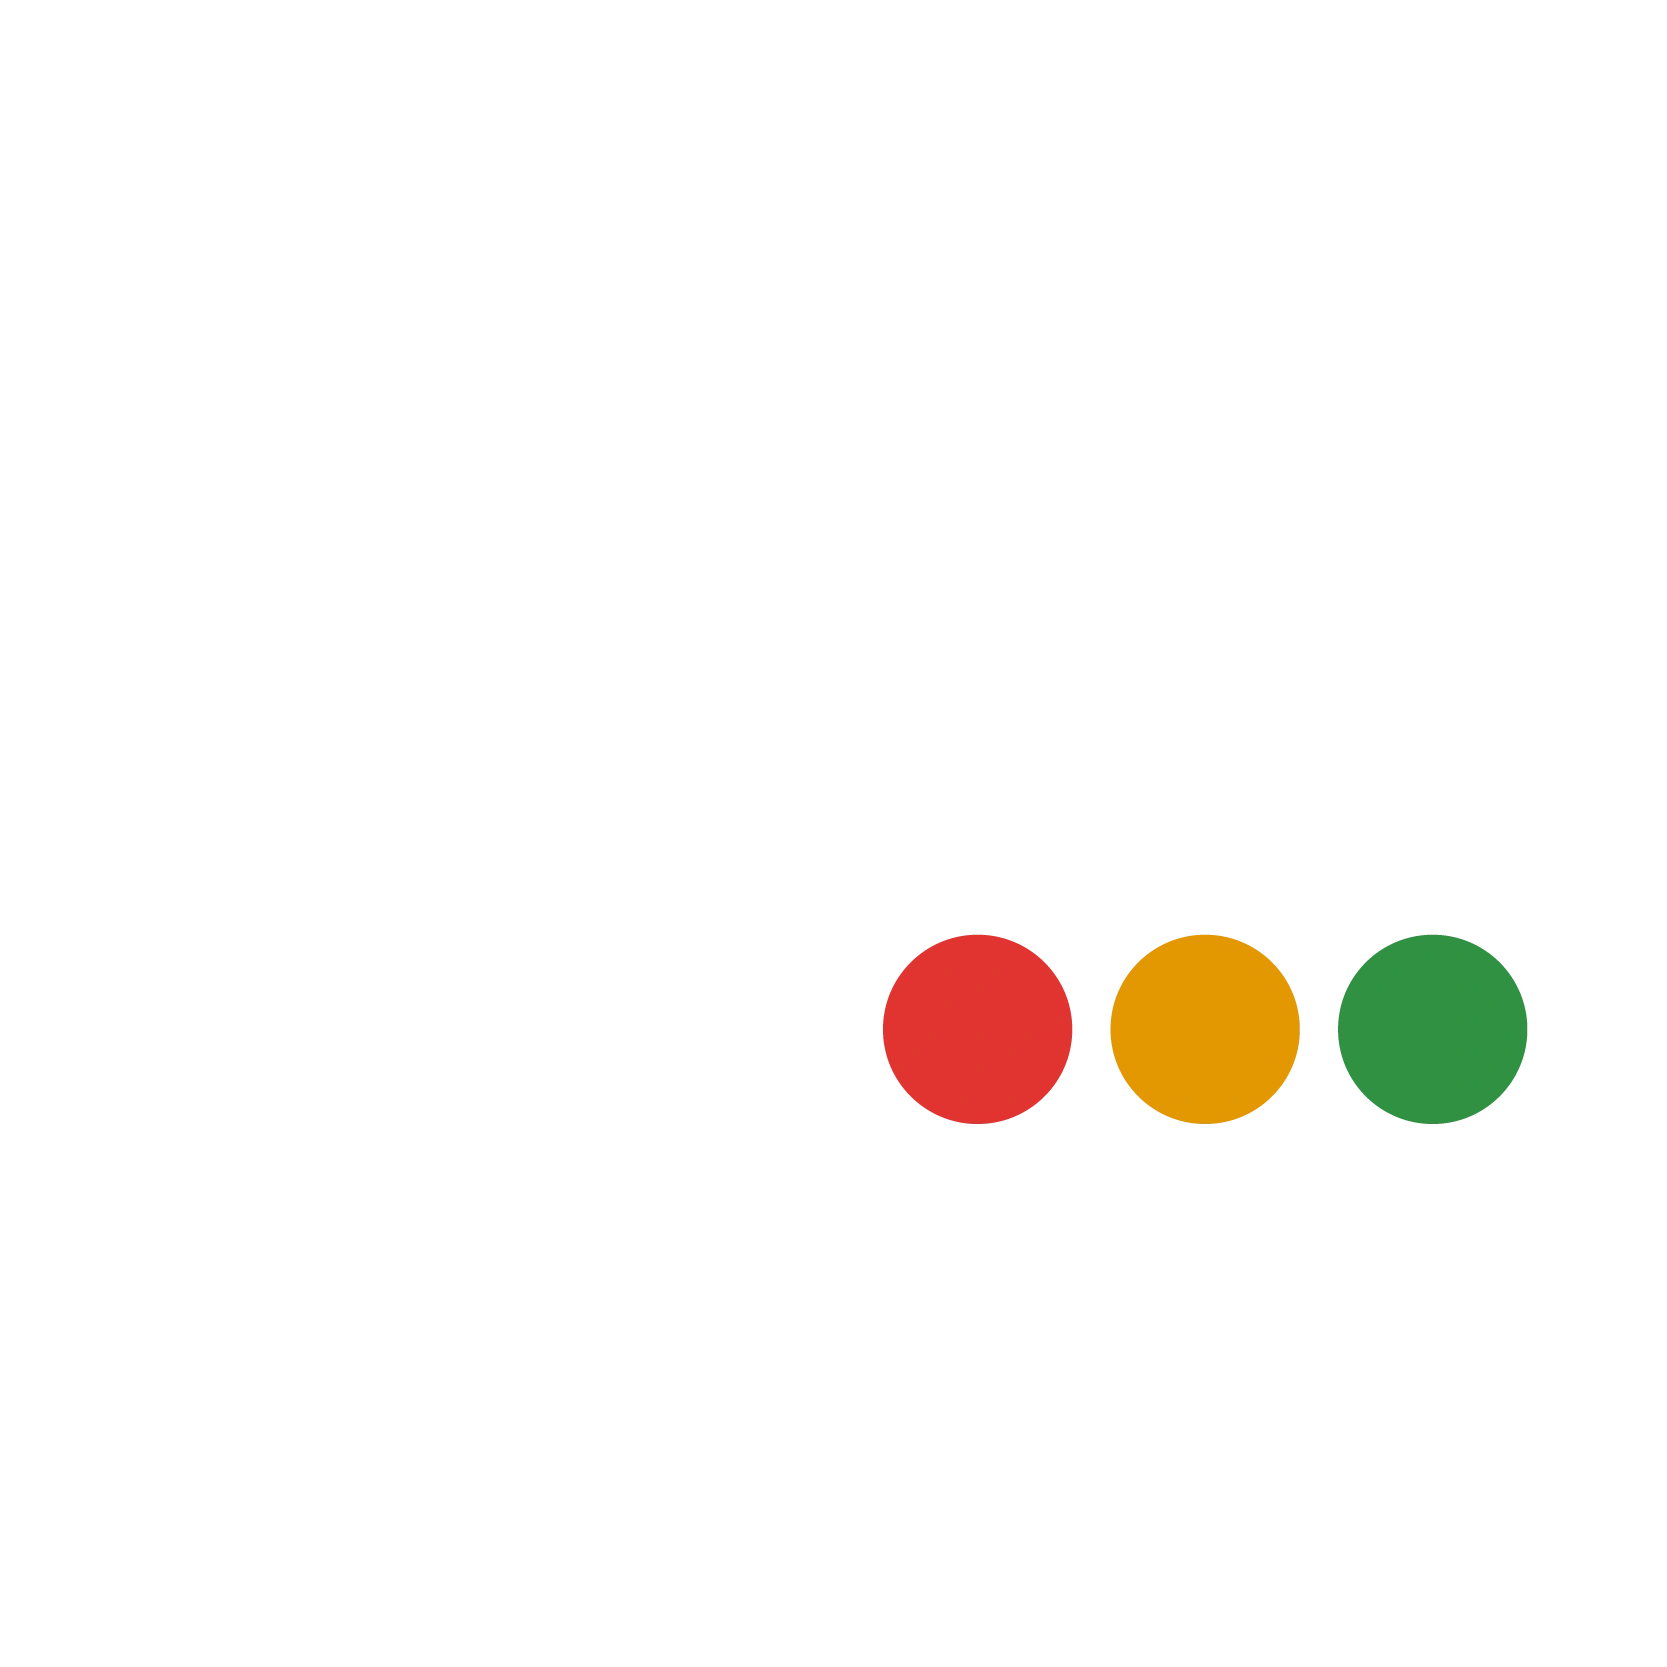 Funder - Your Accounting, Finance & Insurance Team together under one roof, Perth, Western Australia